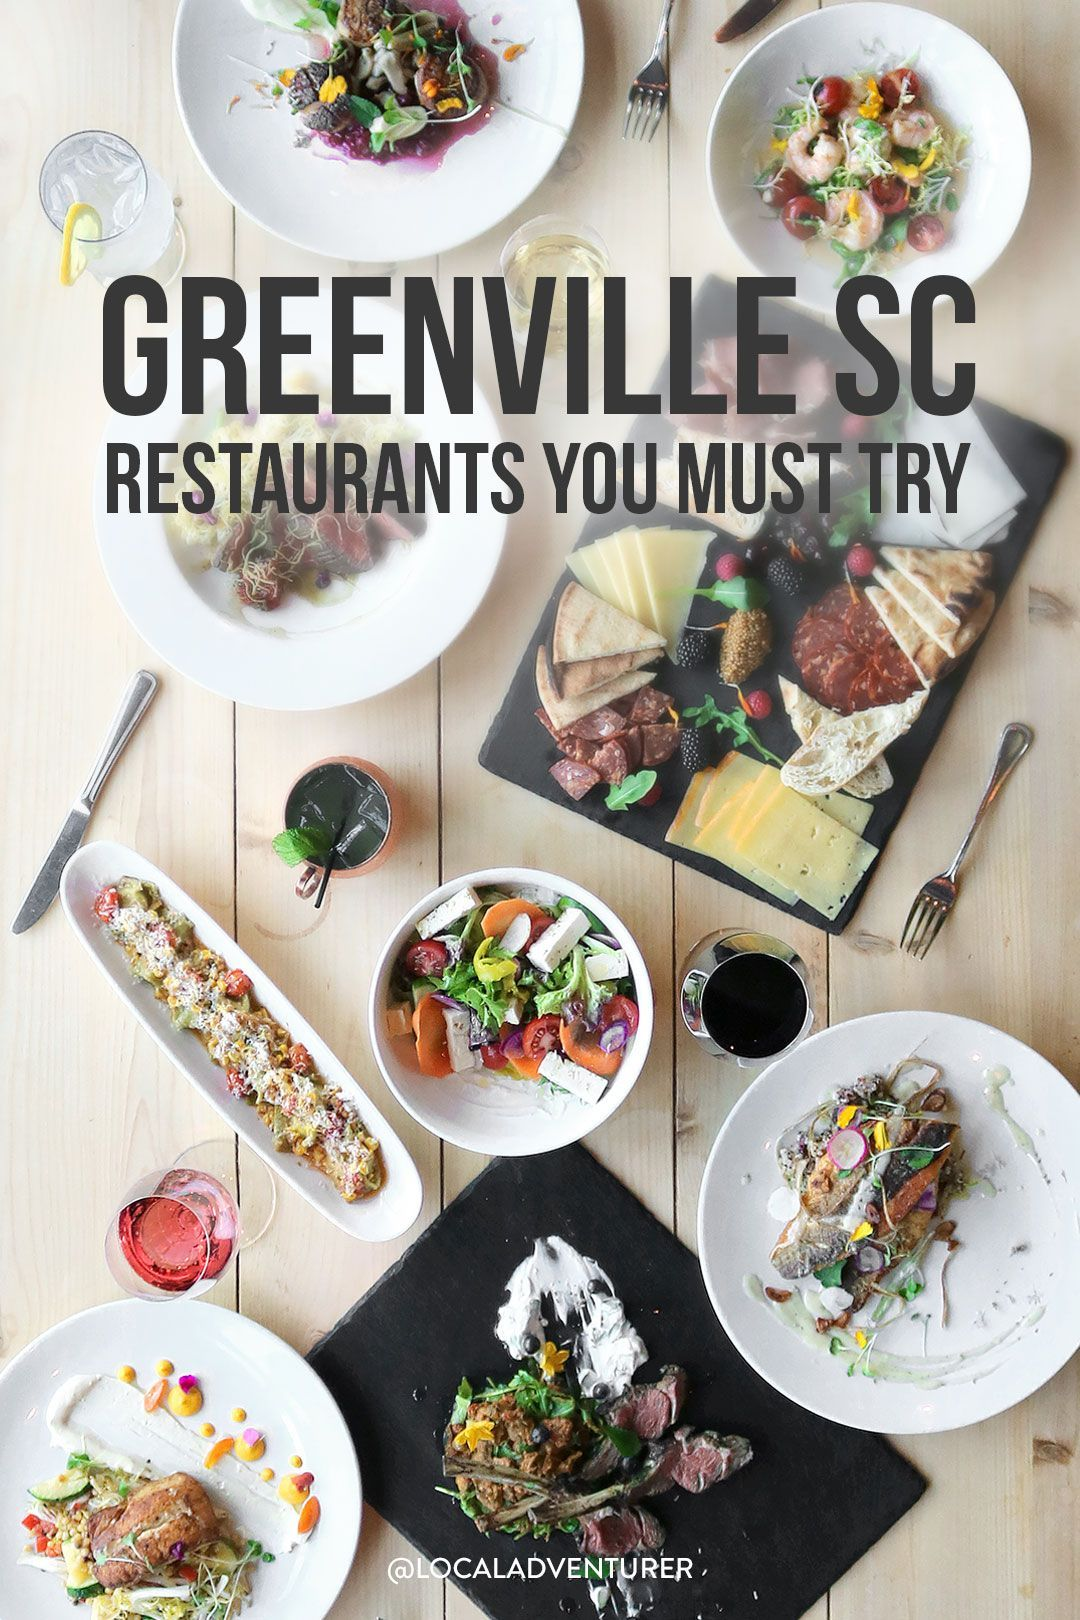 13 Absolutely Amazing Places To Eat In Greenville Sc Local Adventurer In 2020 Places To Eat Best Places To Eat Greenville Sc Restaurants